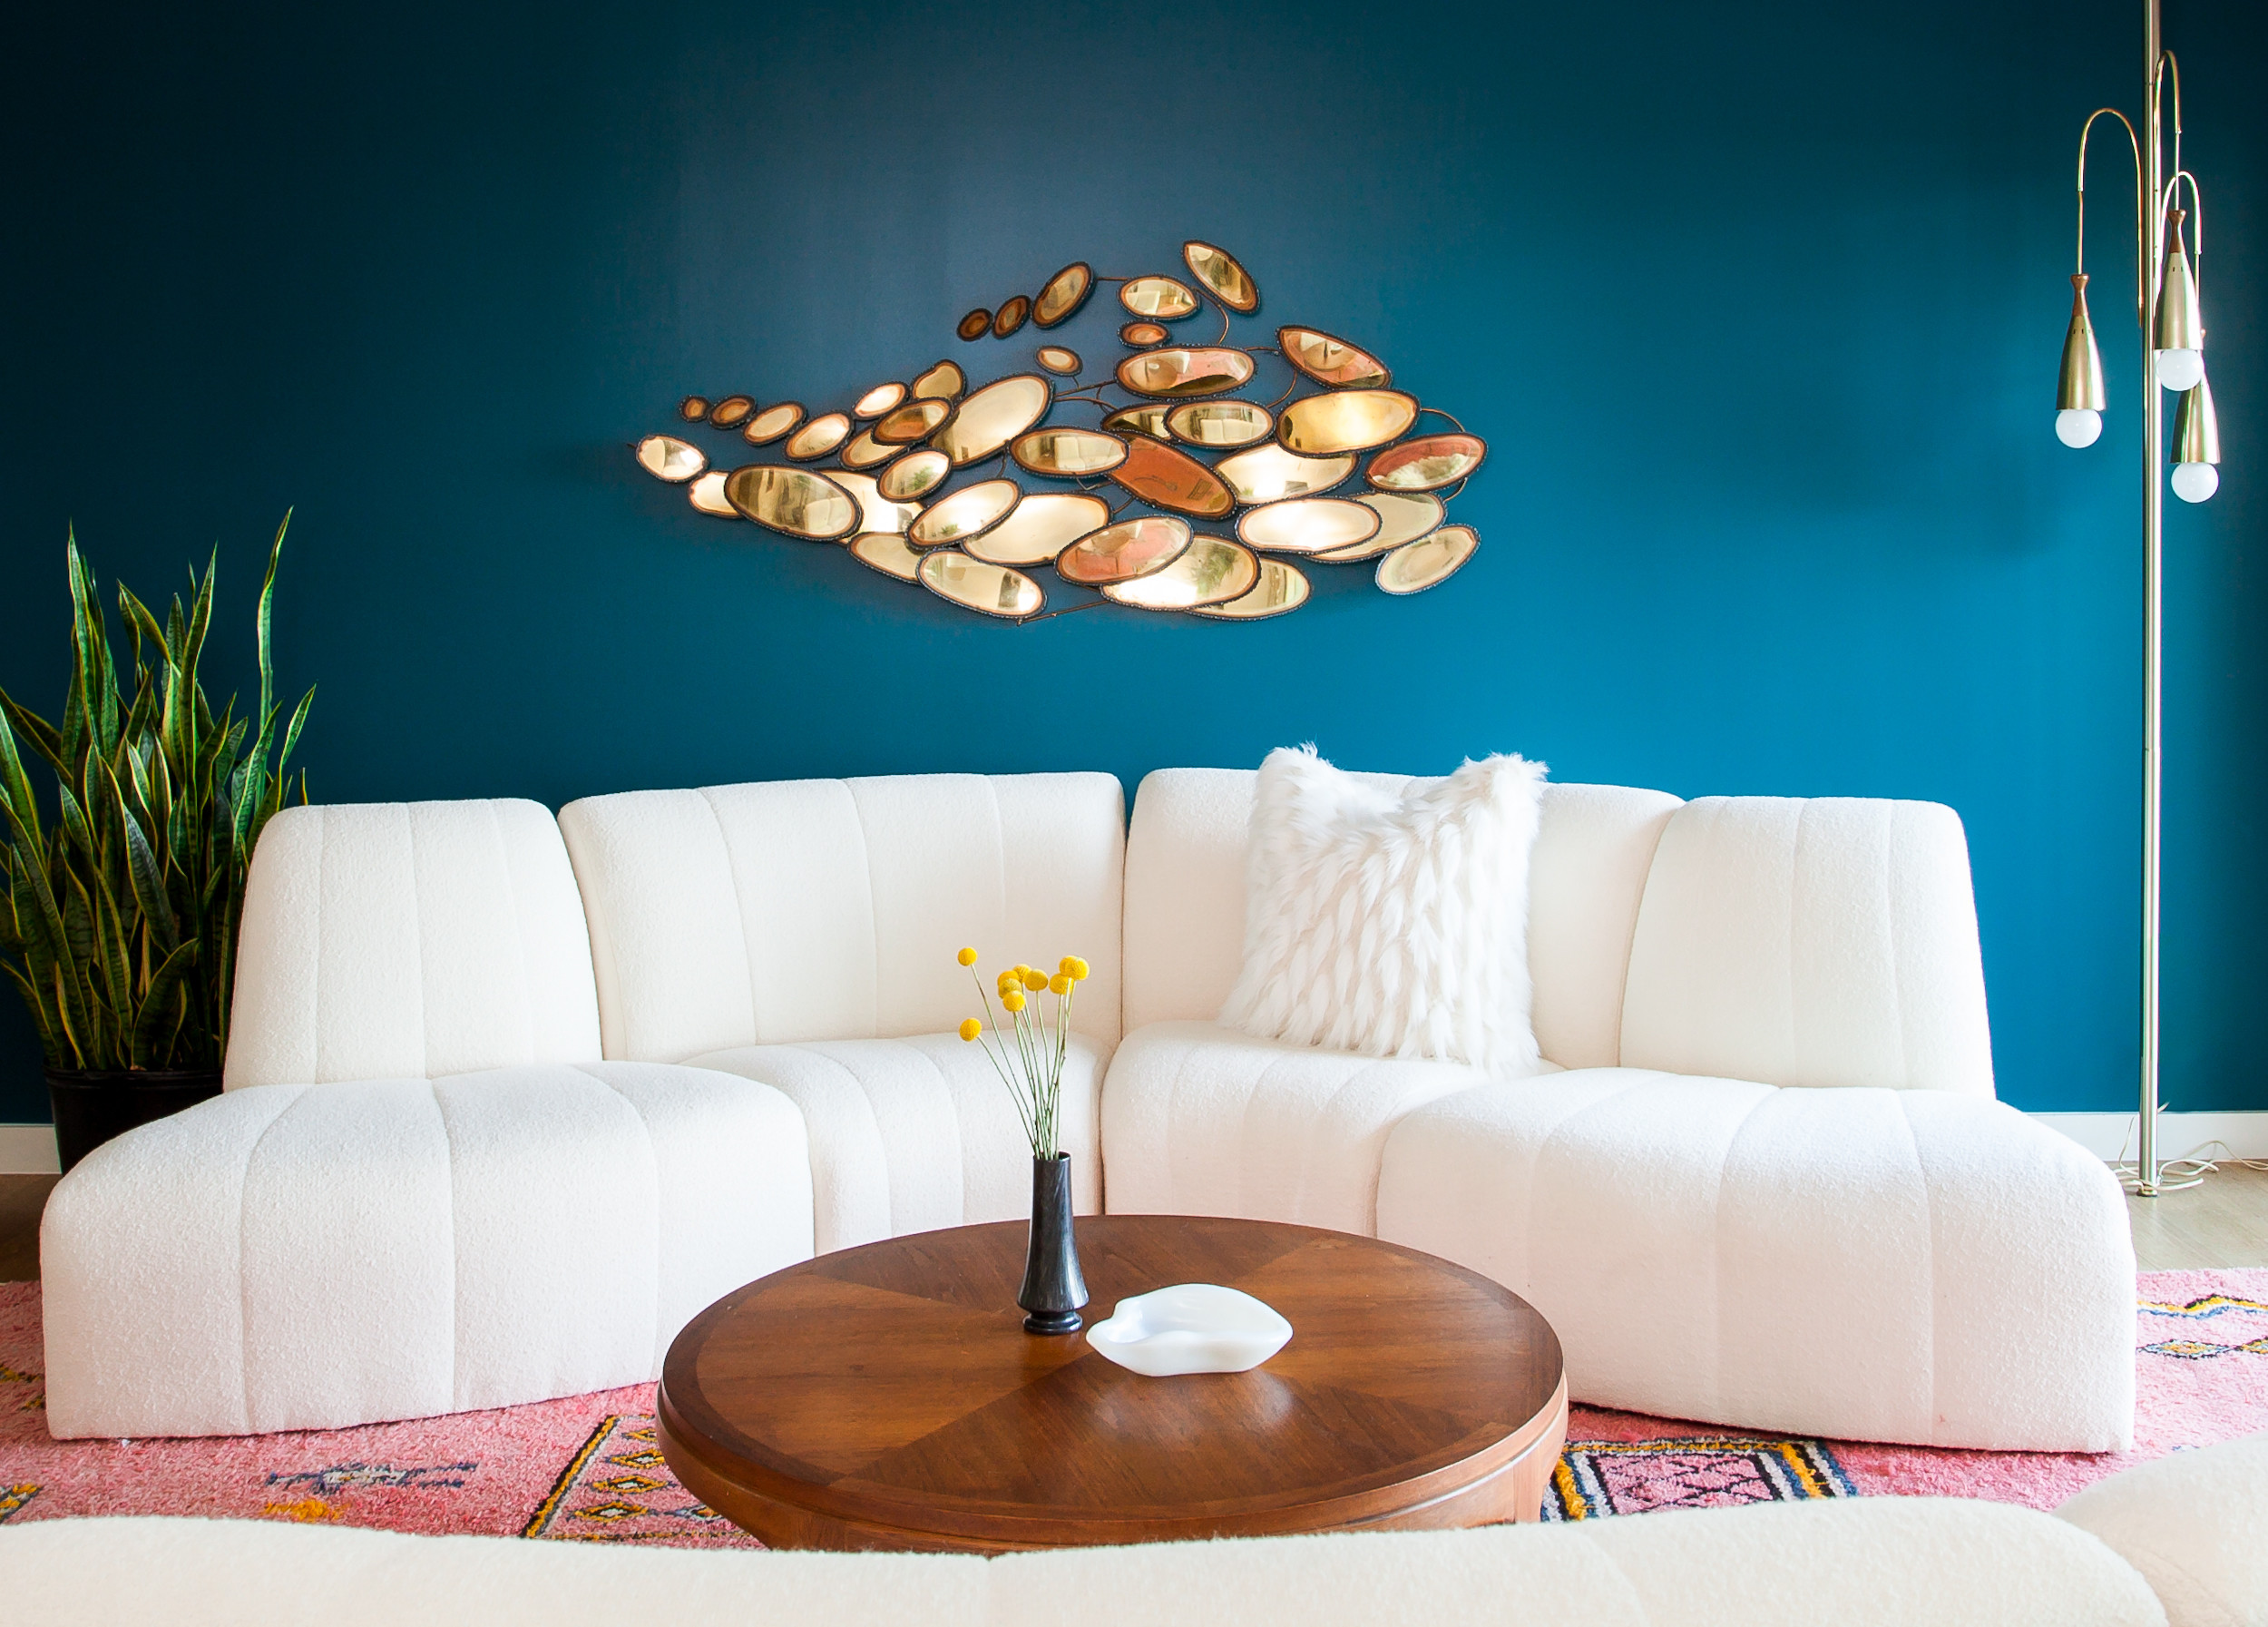 Make Your Small Living Room Chic With These Decorating ... on Small Space Small Living Room Ideas  id=78651